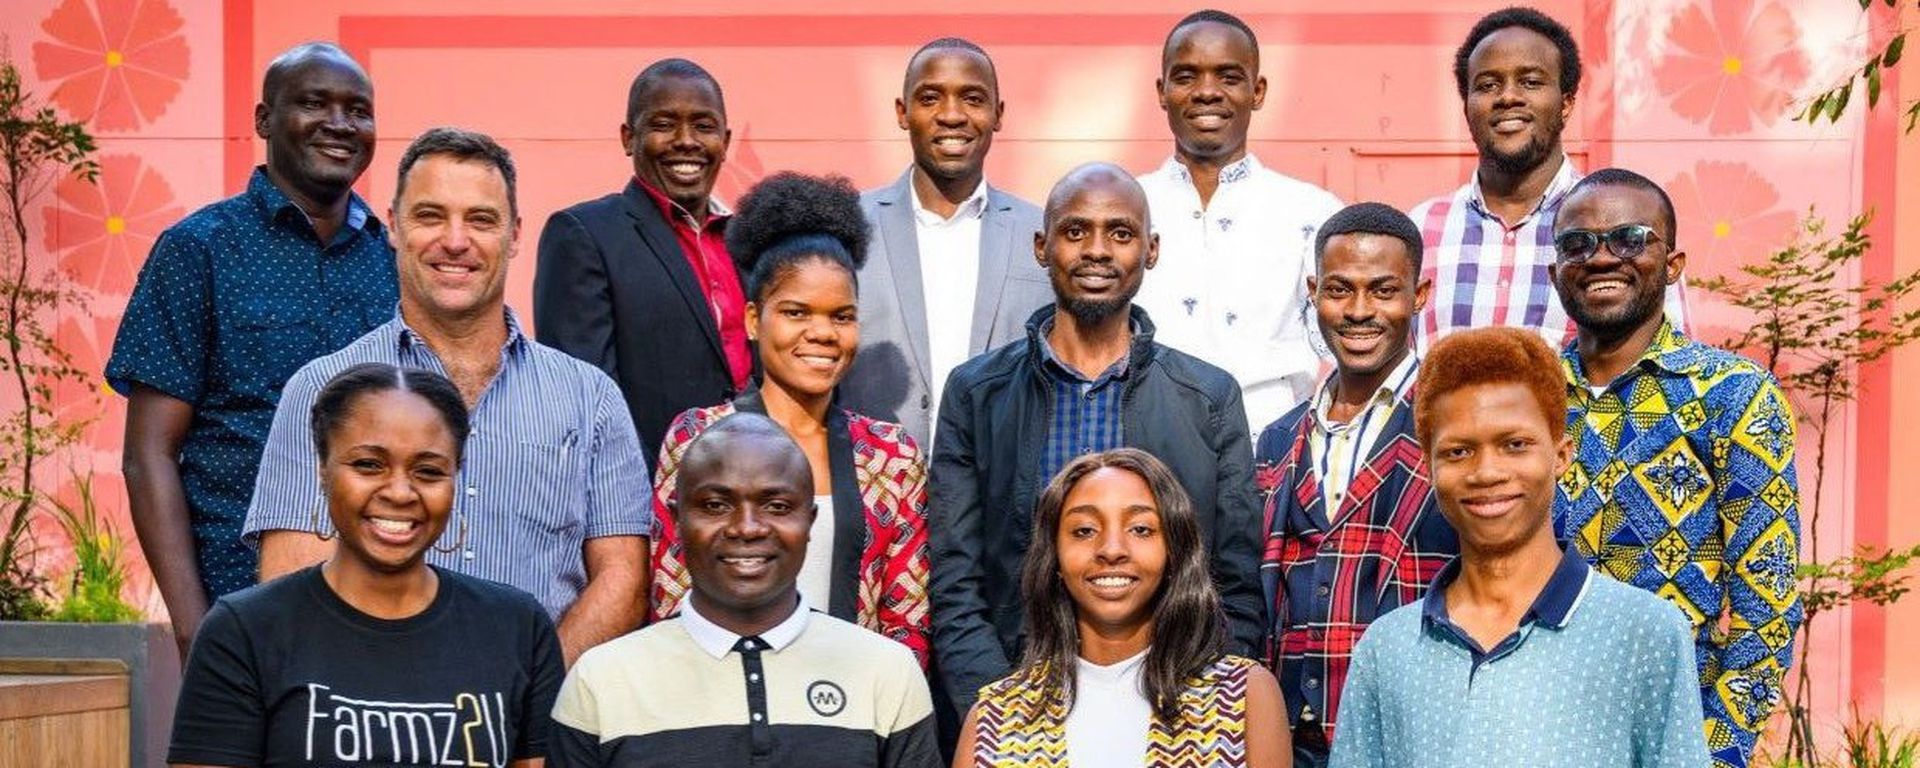 Royal Academy of Engineering - The Africa Prize for Engineering Innovation Movemeback African initiative cover image